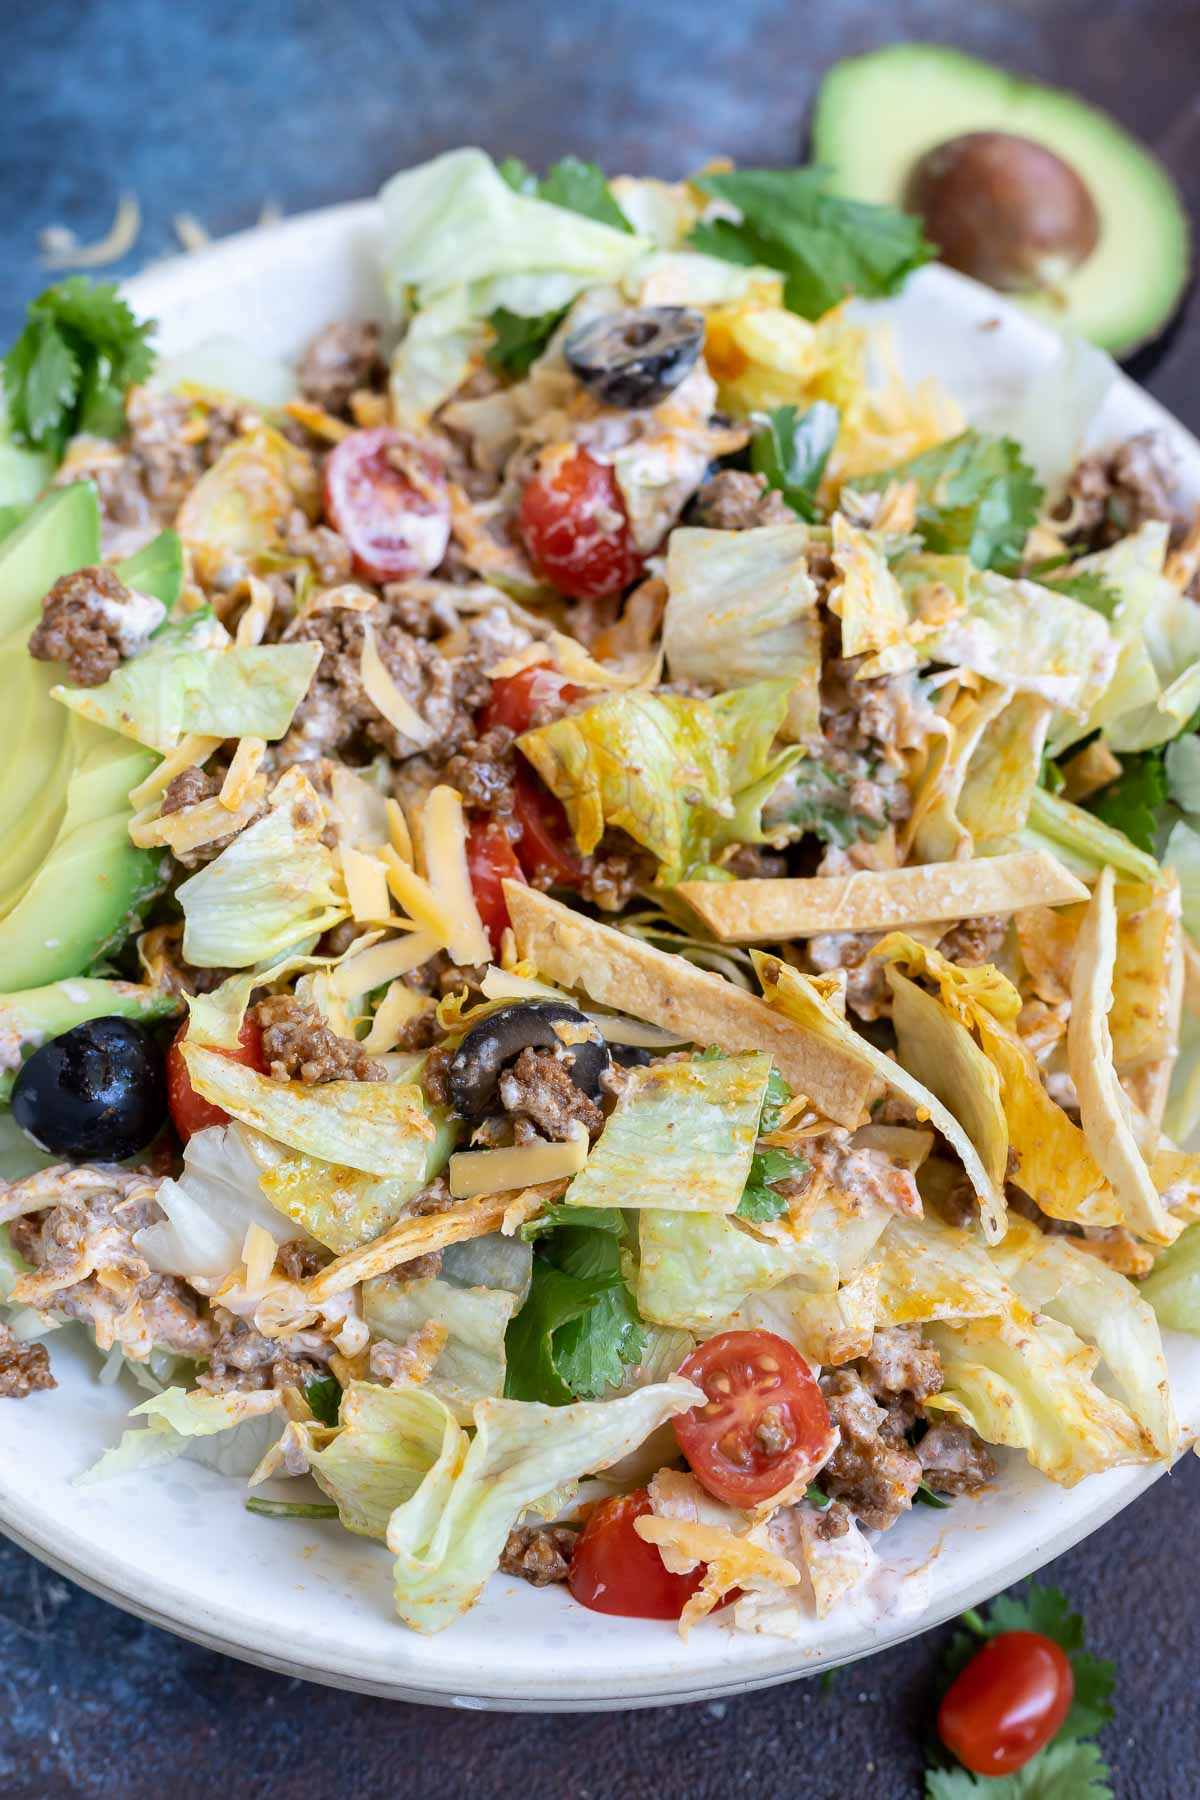 taco salad ingredients all mixed together in white bowl